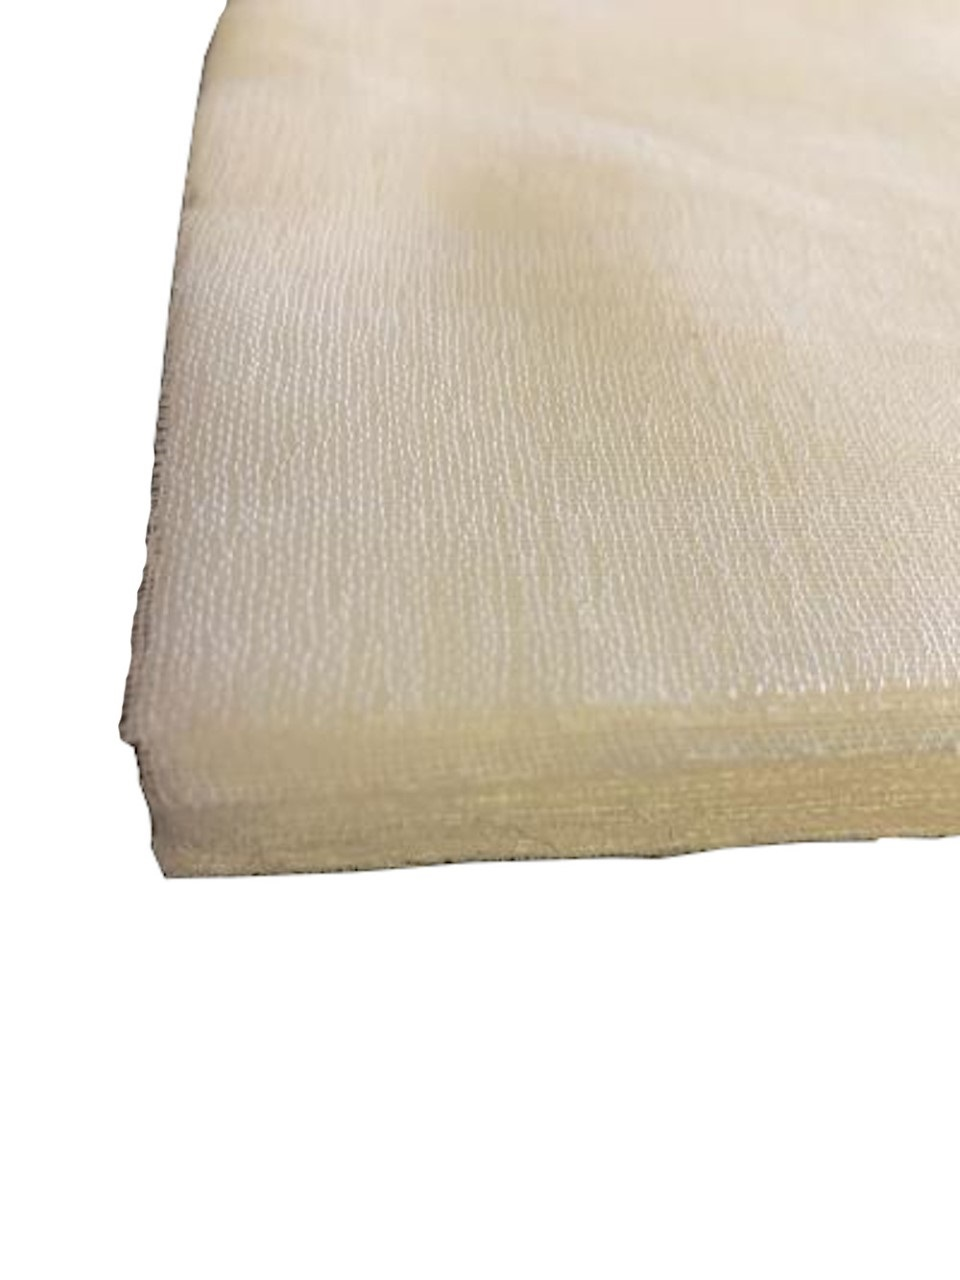 "90 Grade Cheesecloth 12"" x 12"" Squares Bleached - 100 Pack"